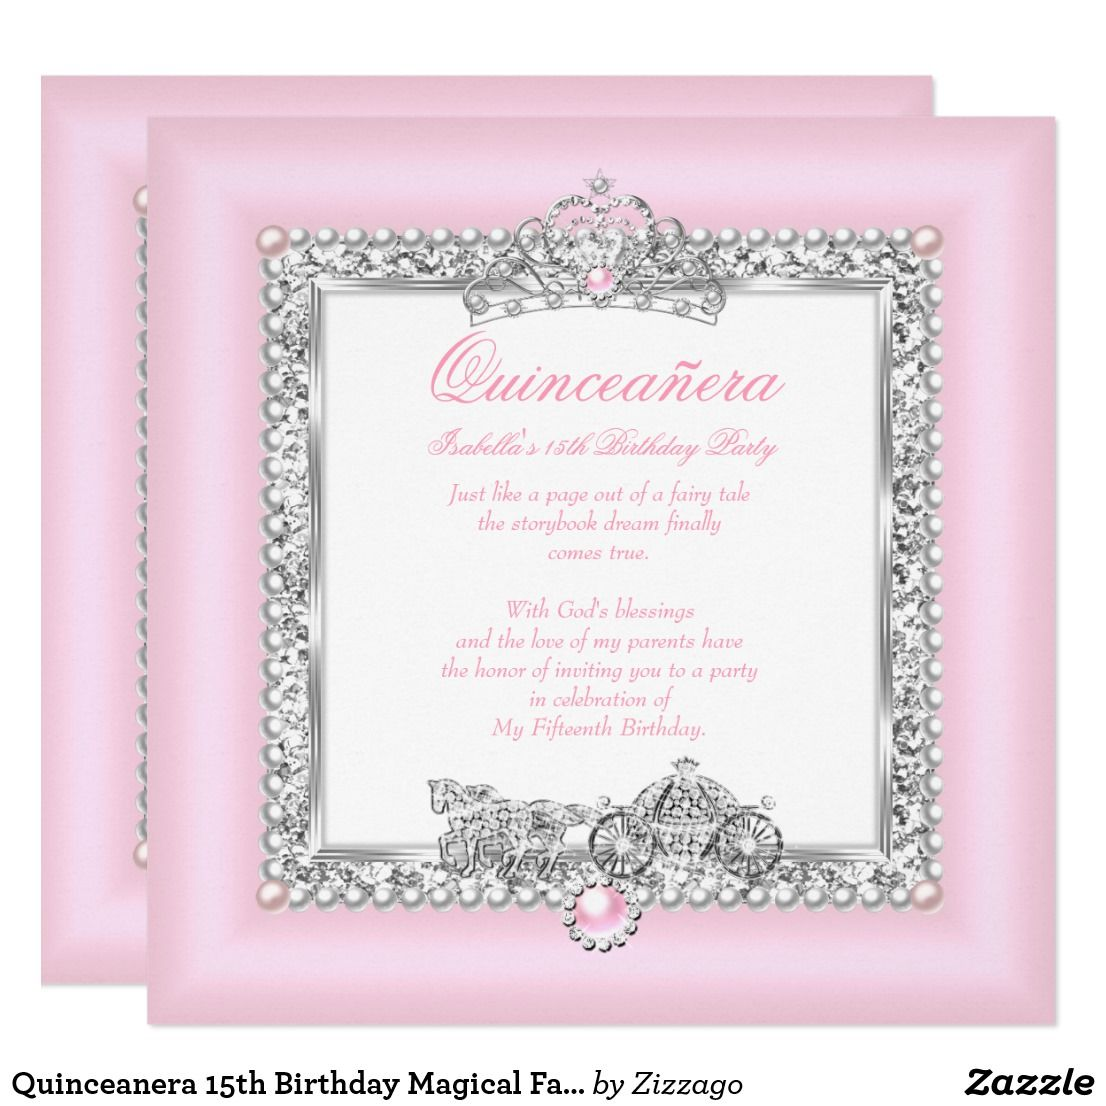 Quinceanera 15th Birthday Magical Fairytale Pink Invitation ...